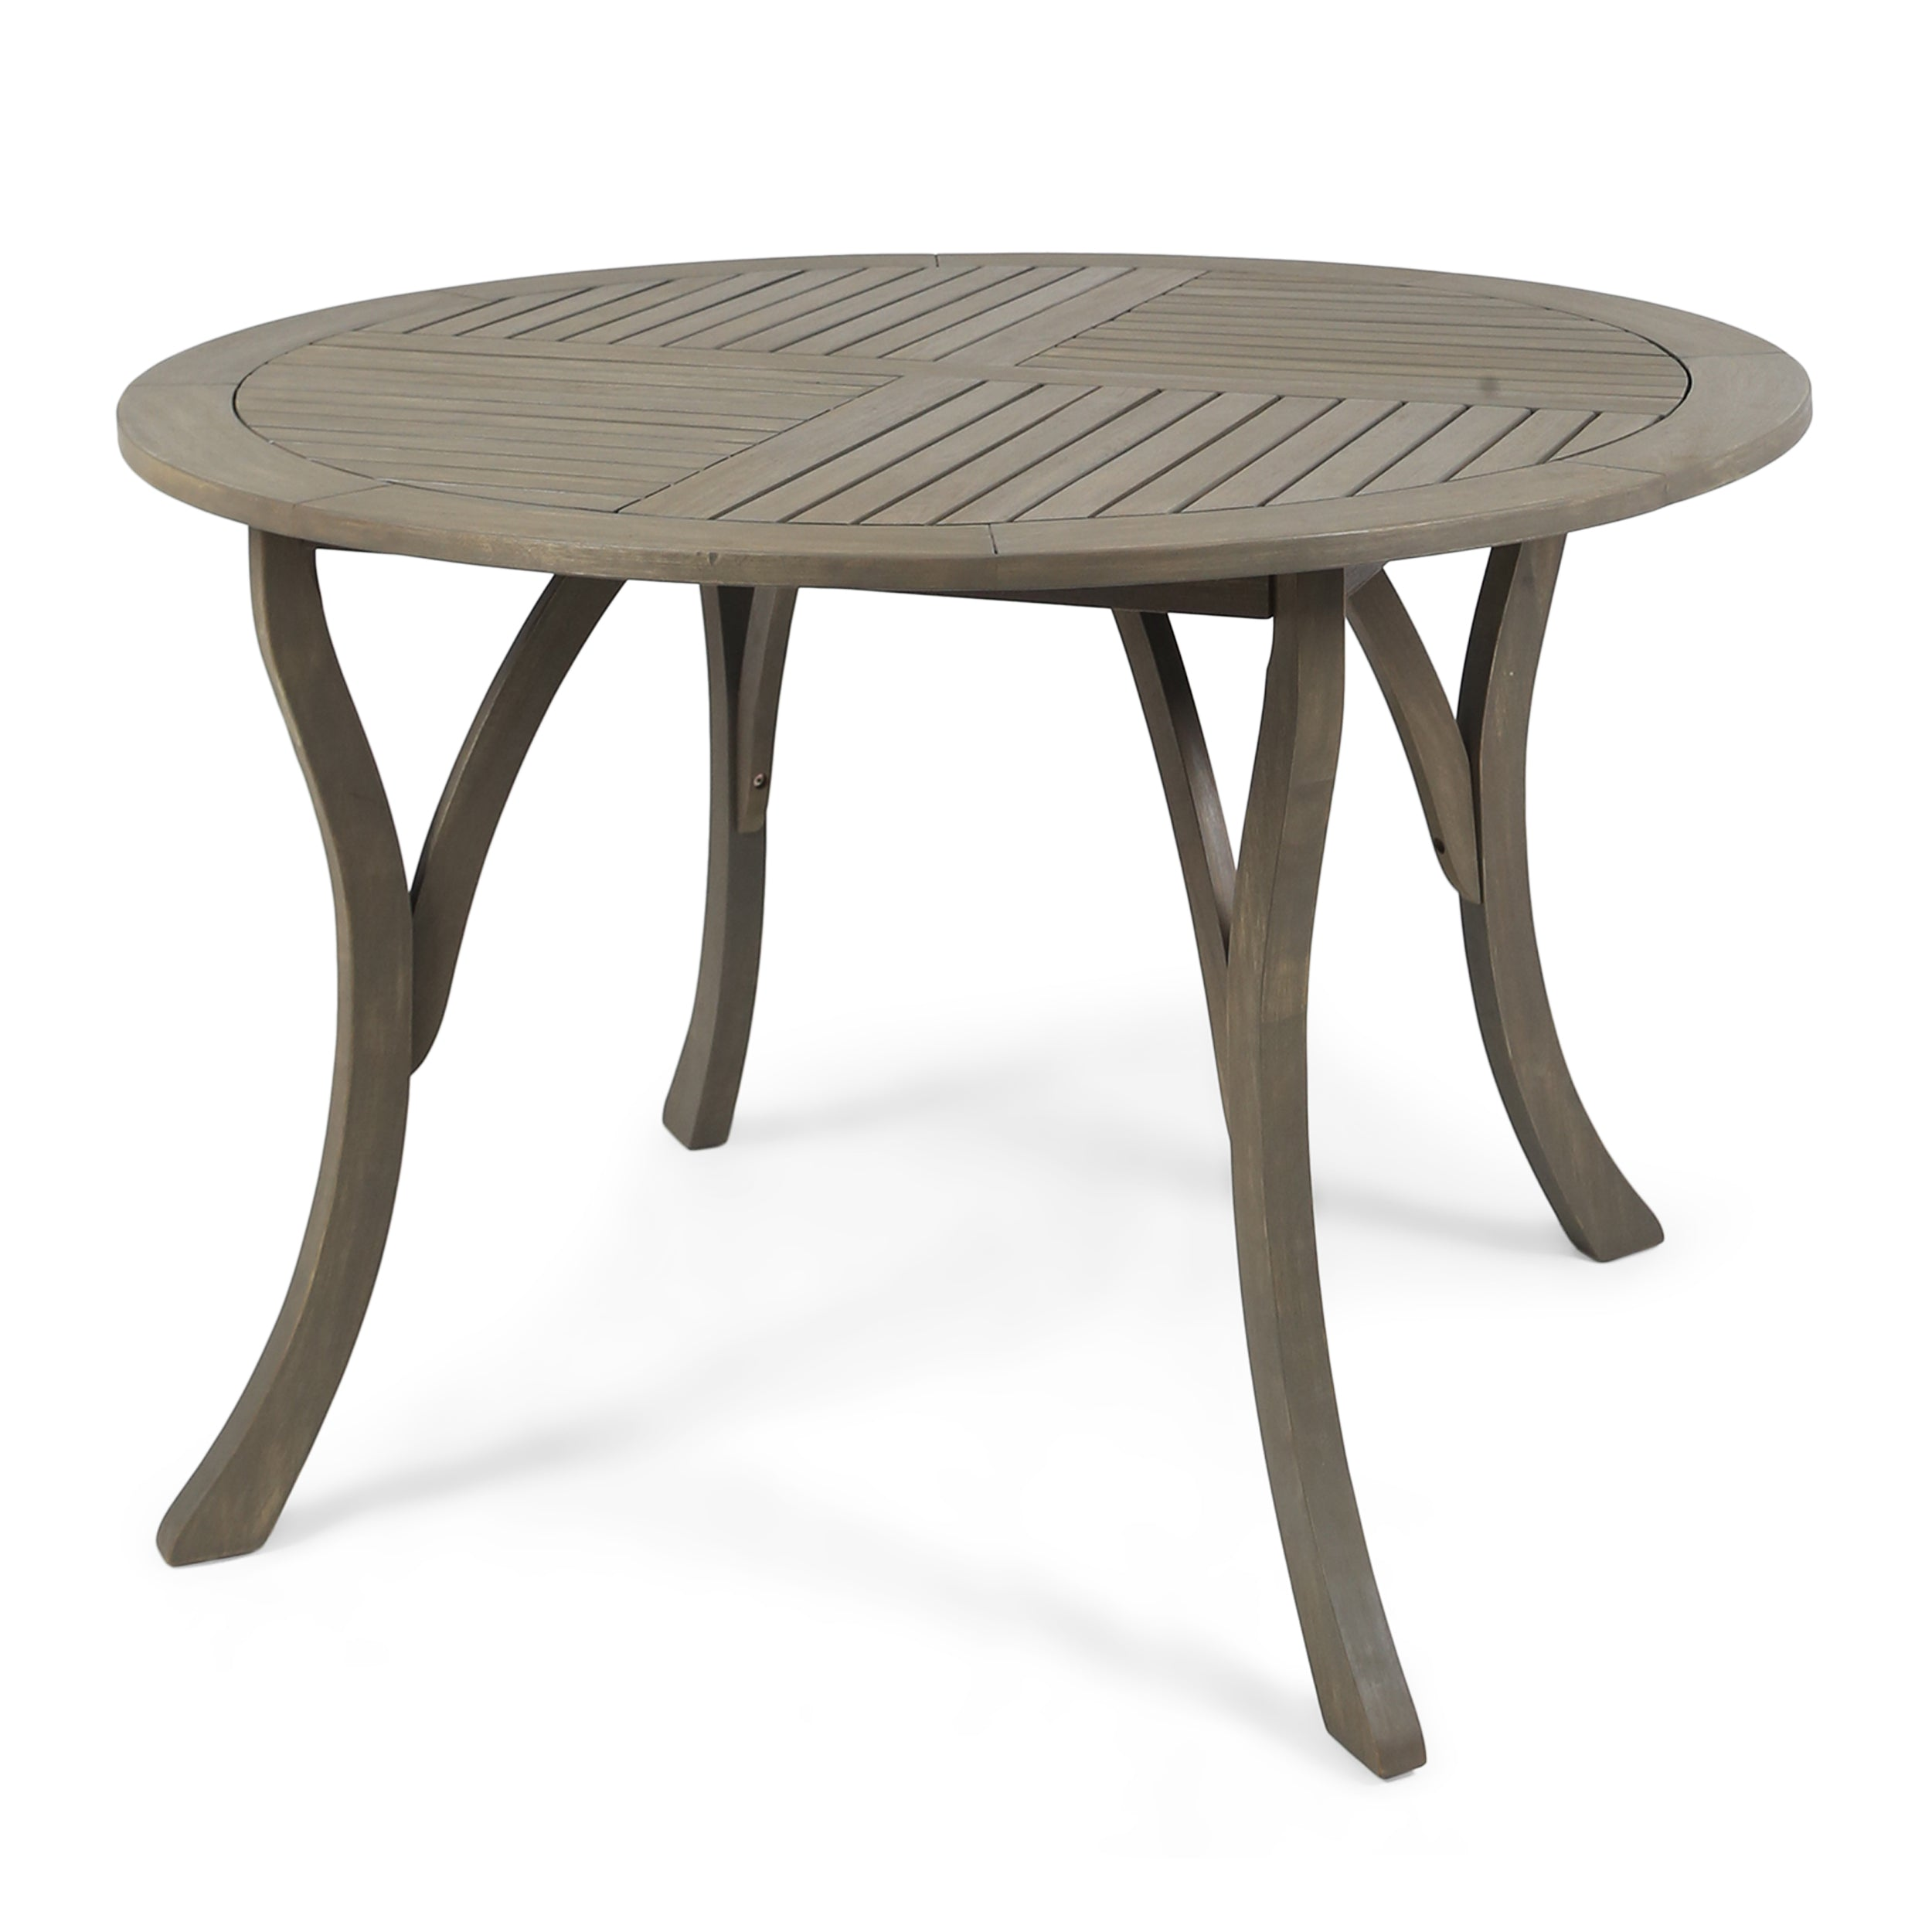 Adn Outdoor 47 inch Round Acacia Wood Dining Table Teak